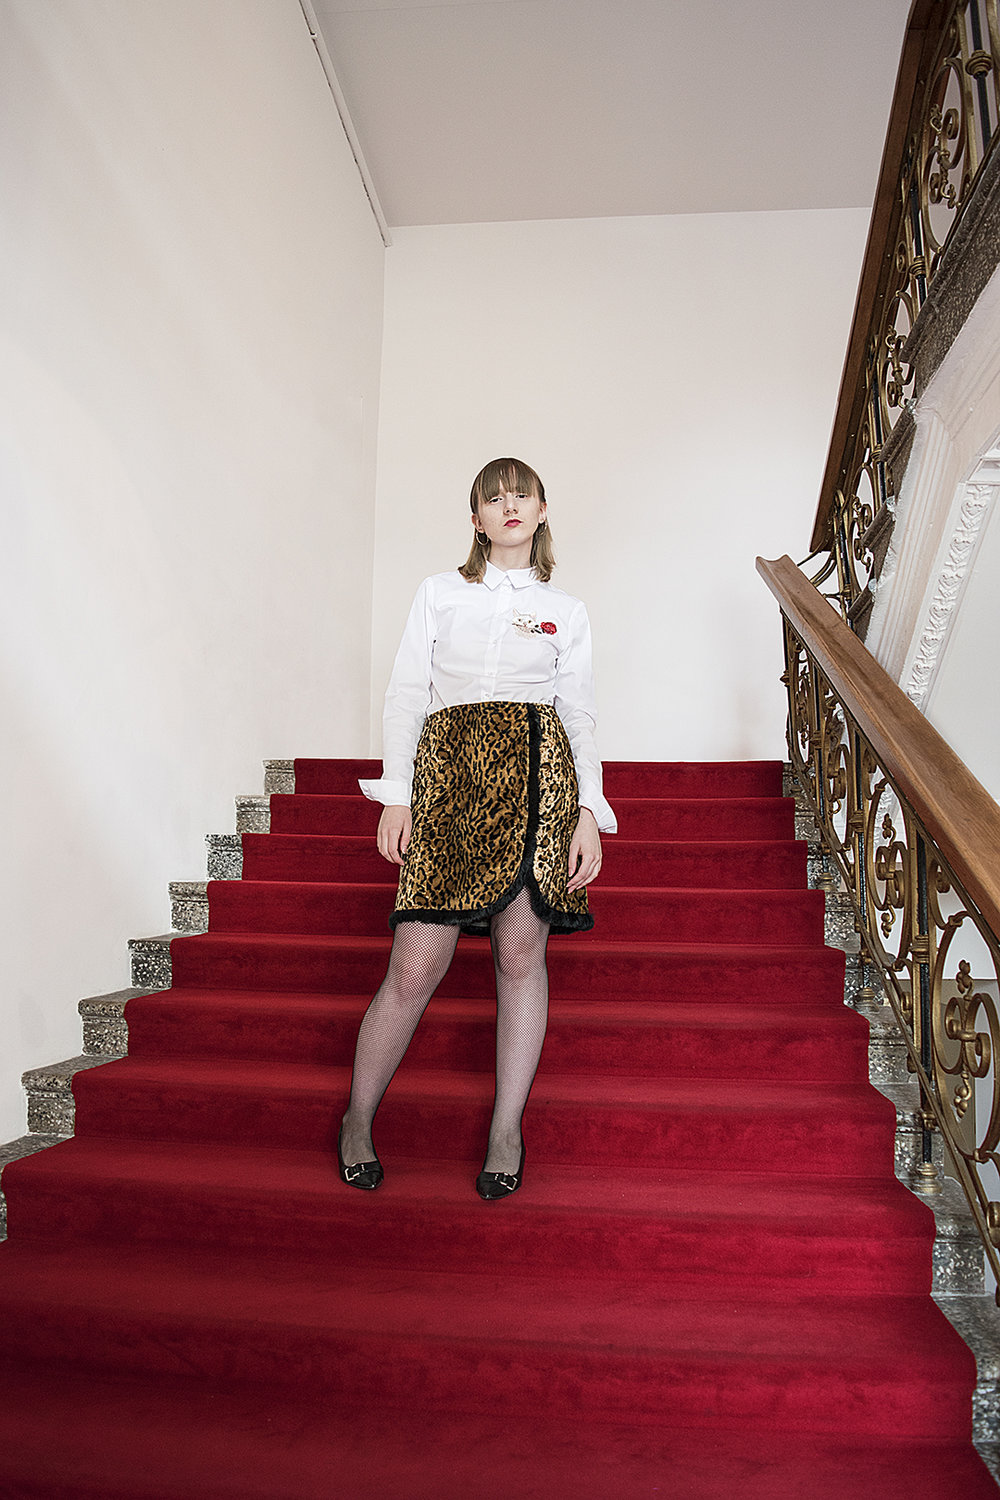 Owning The Style With A Social Message | Pretty Ugly